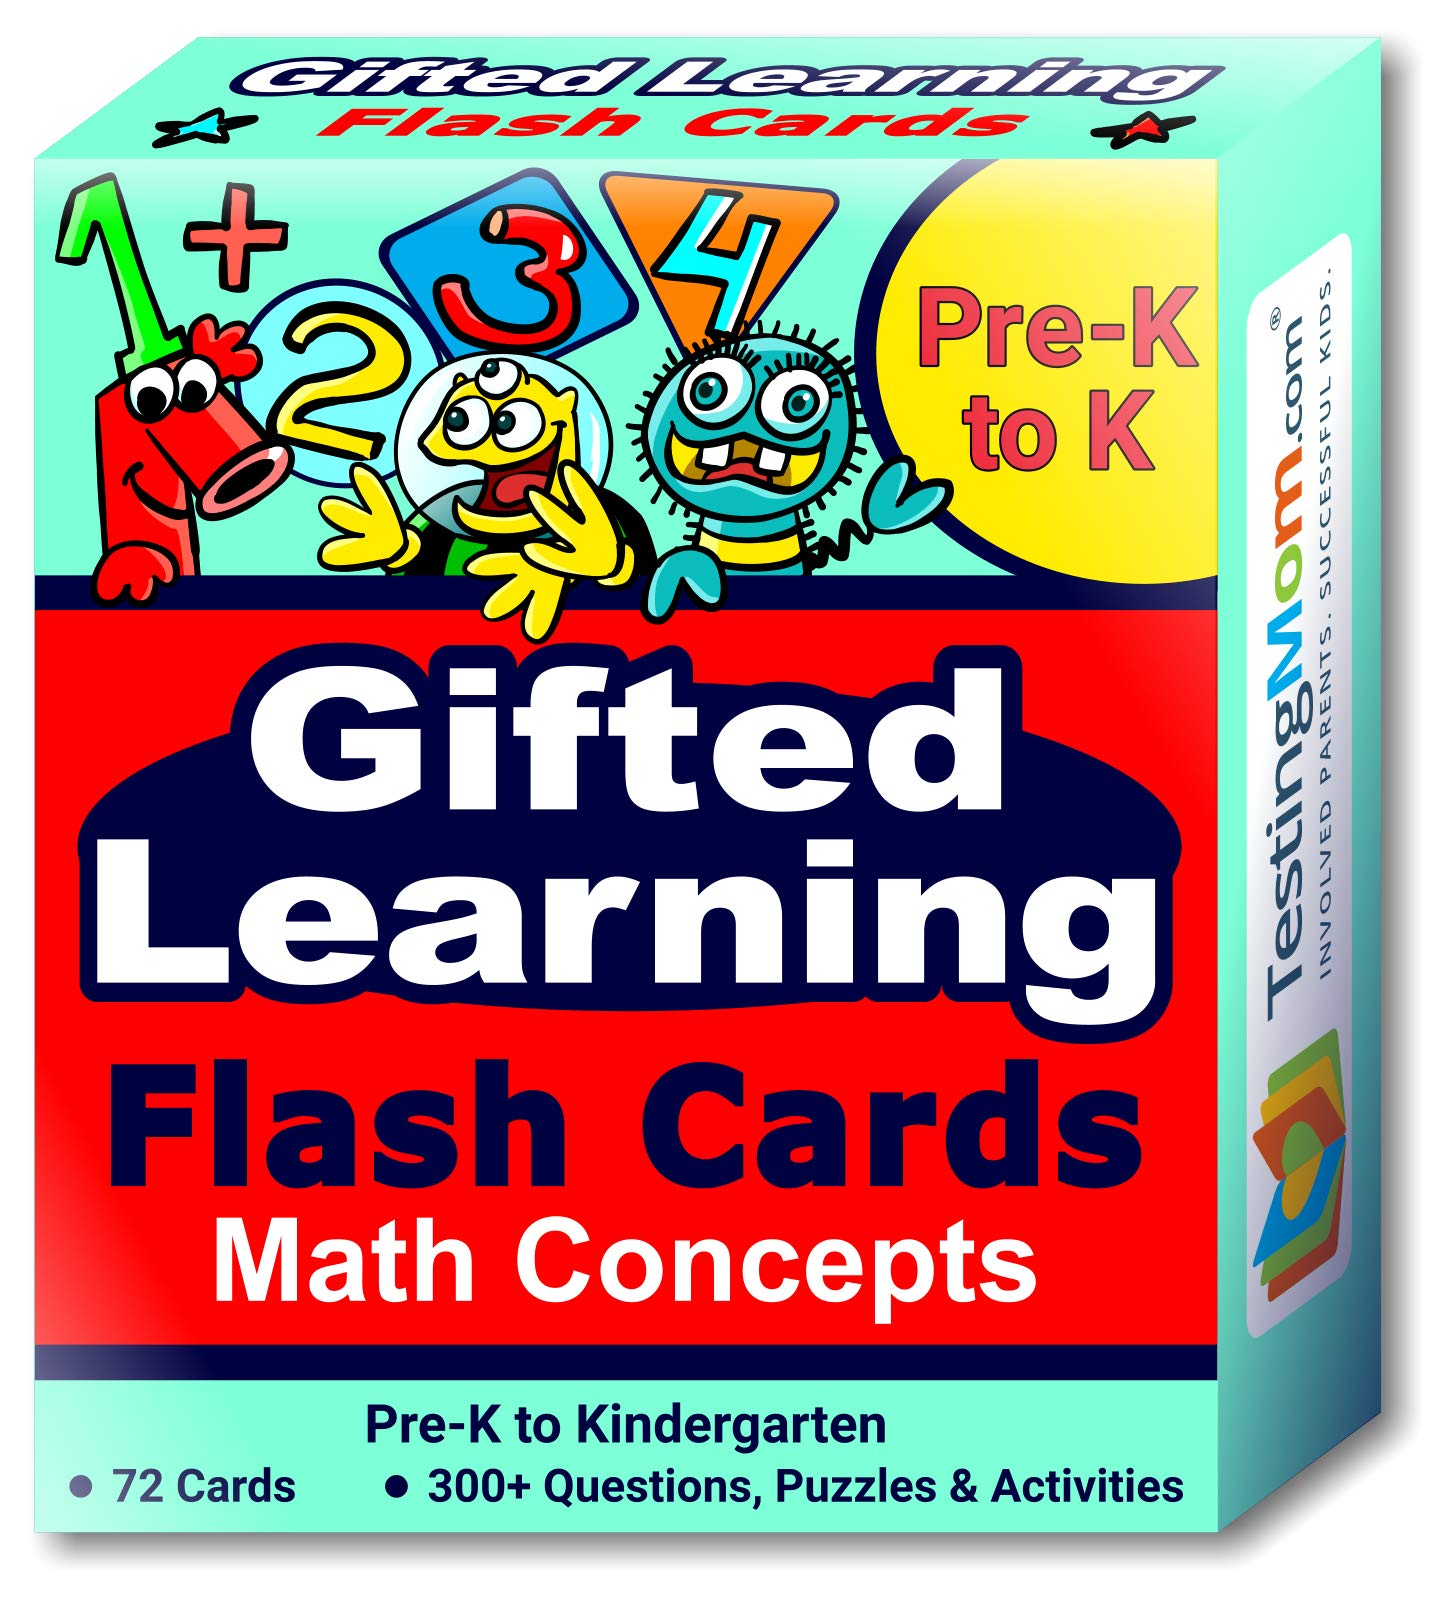 TestingMom.com Gifted Learning Flash Cards - Math Concepts for Pre-K - Kindergarten - Educational Practice for CogAT Test, OLSAT Test, ITBS, NYC Gifted and Talented, WISC, WPPSI by TestingMom.com